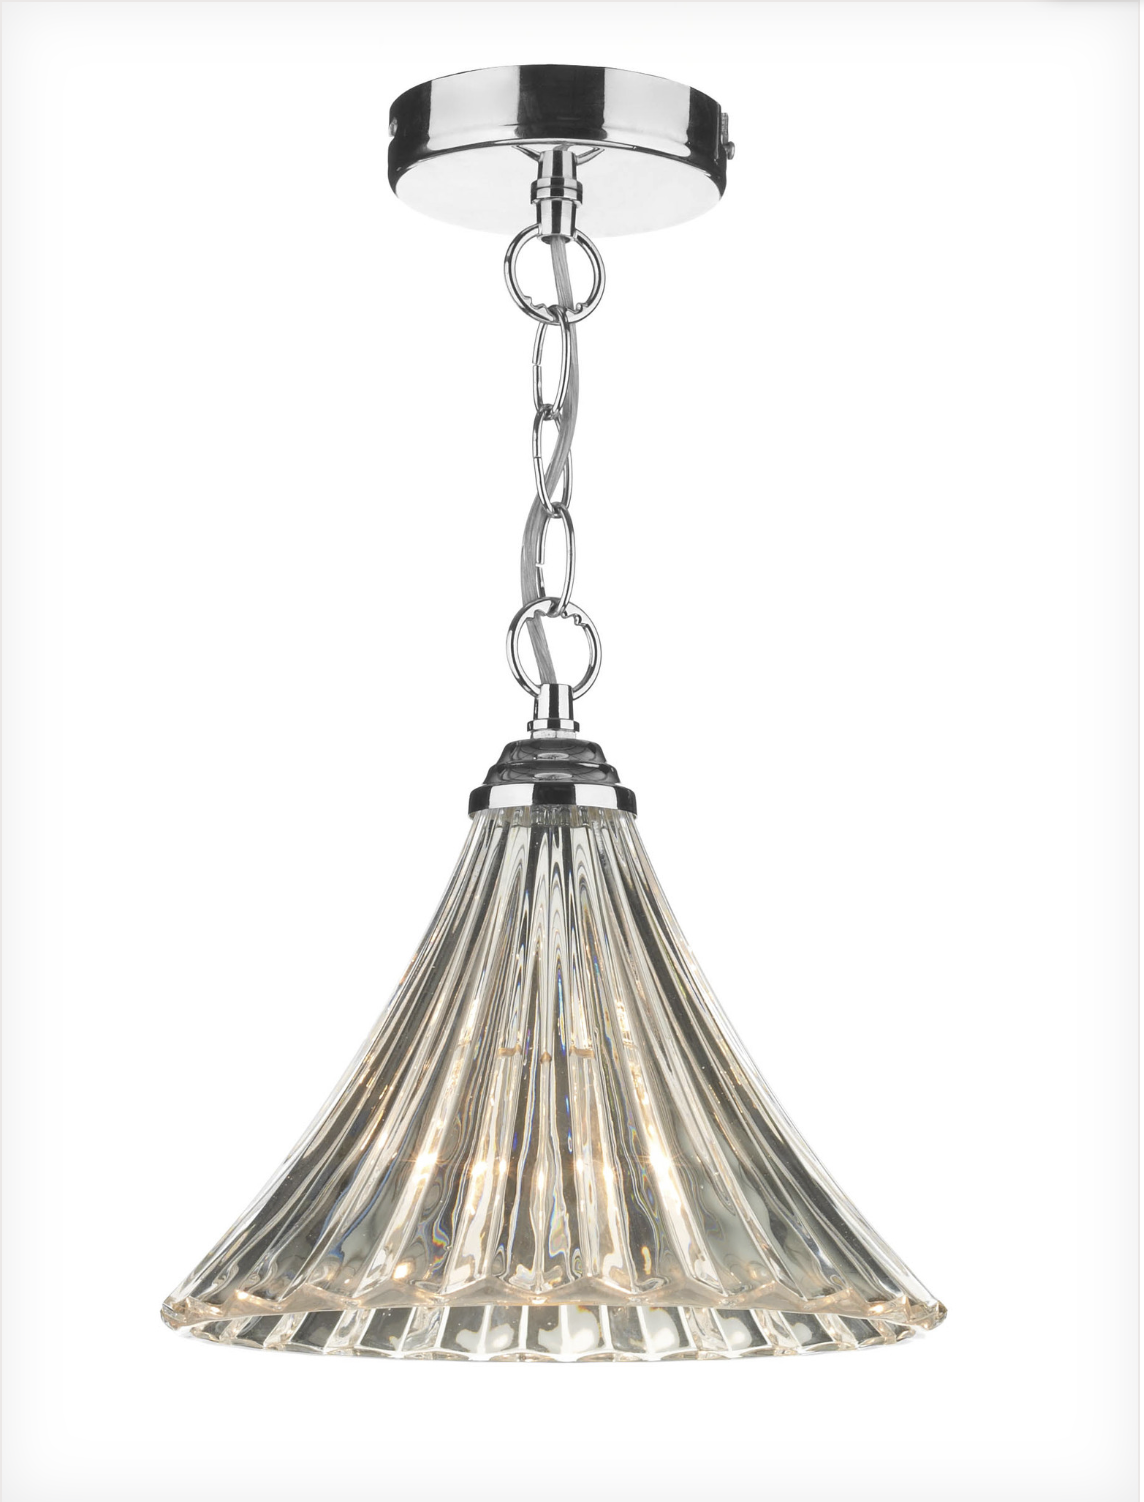 Loxwood Small Polished Chrome and Glass Single Pendant - ID 1166